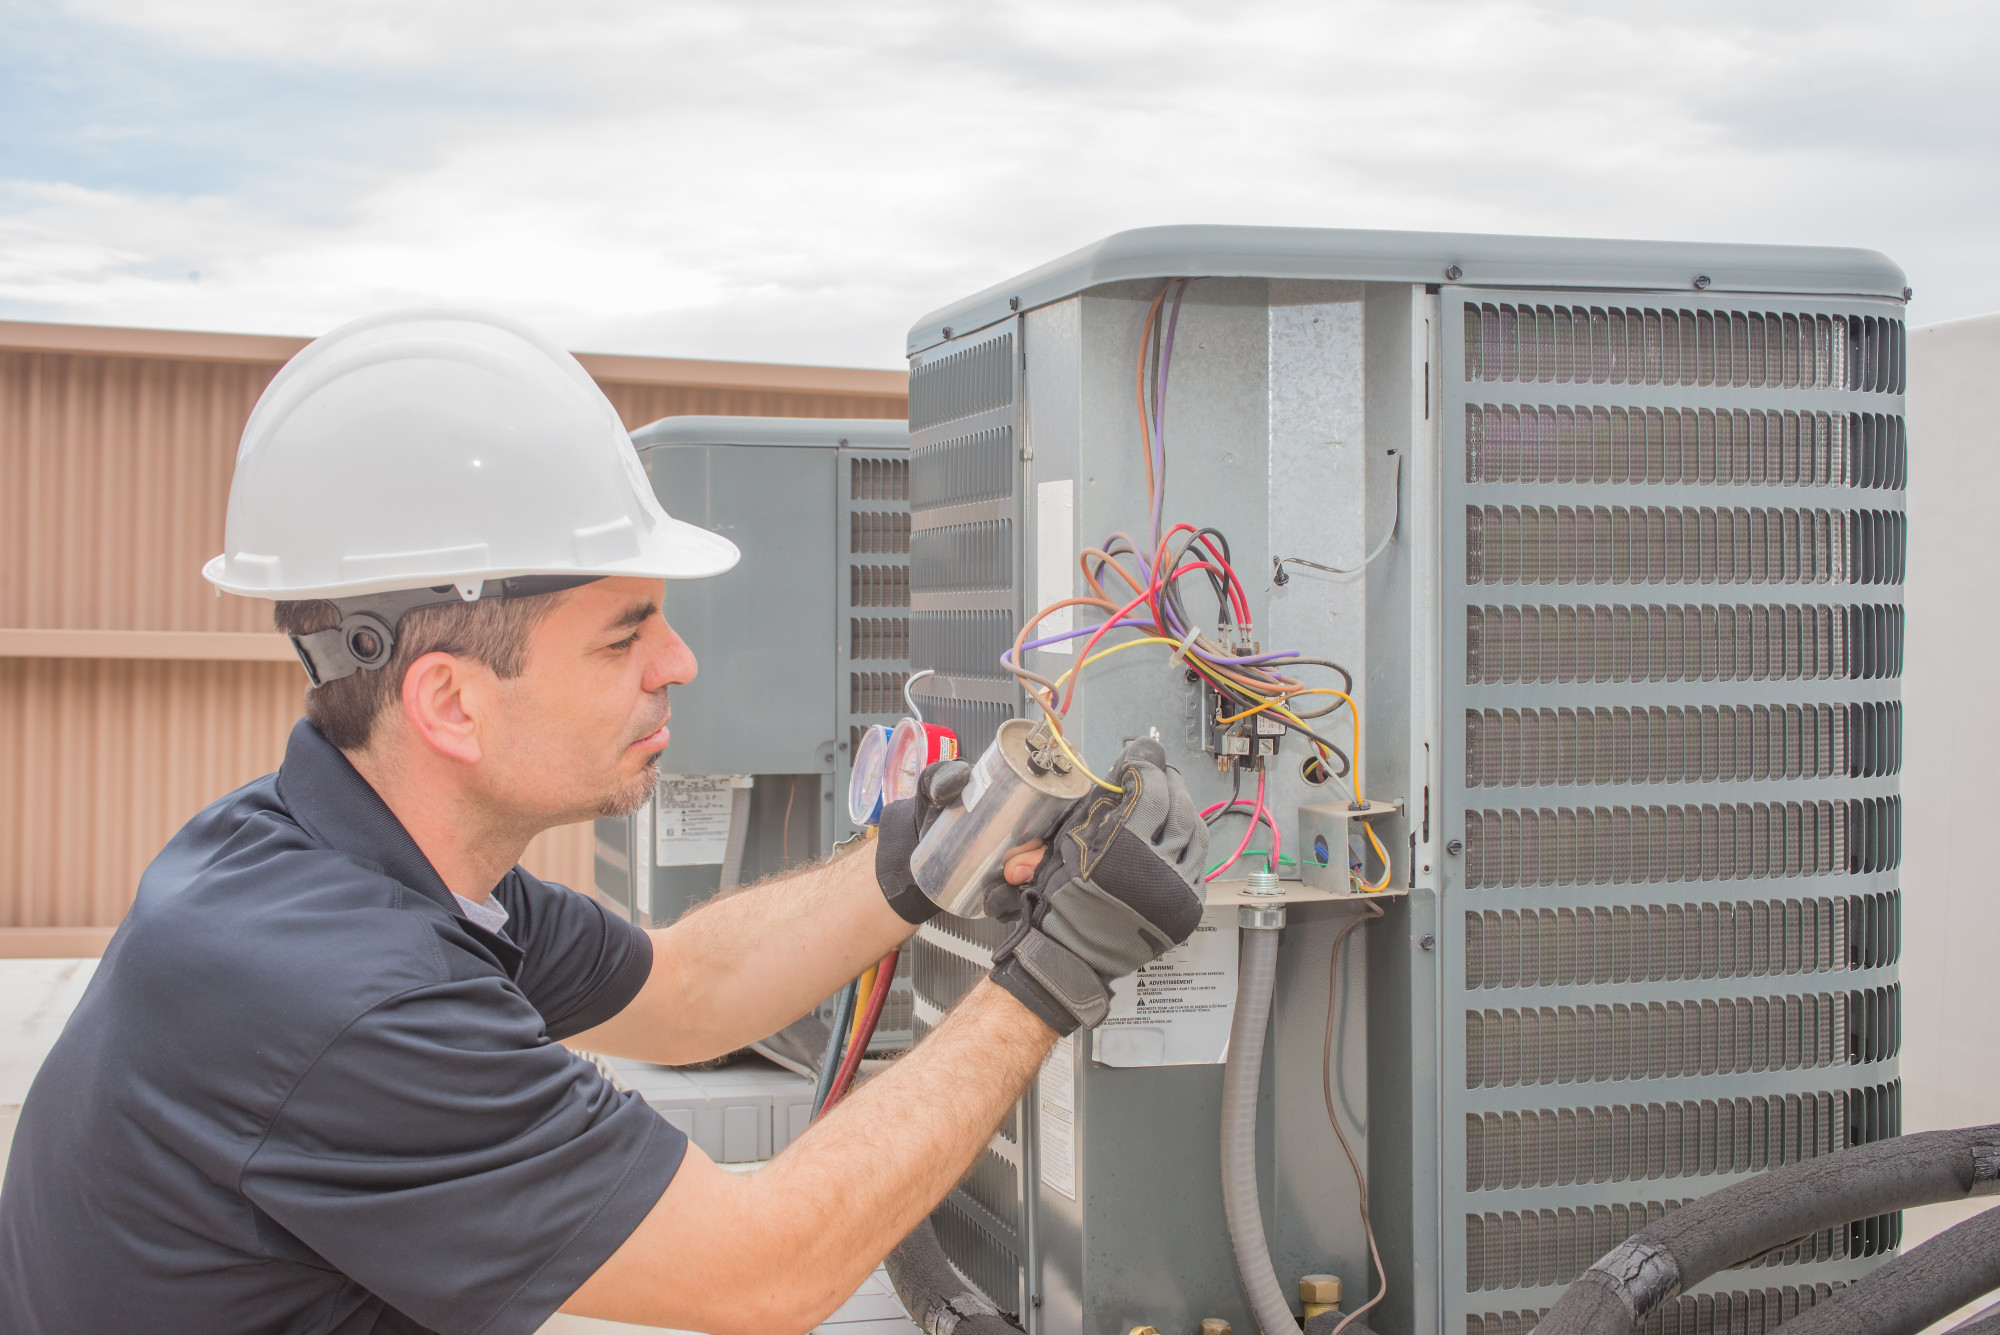 Air Conditioning Repair: How to Troubleshoot Common Problems